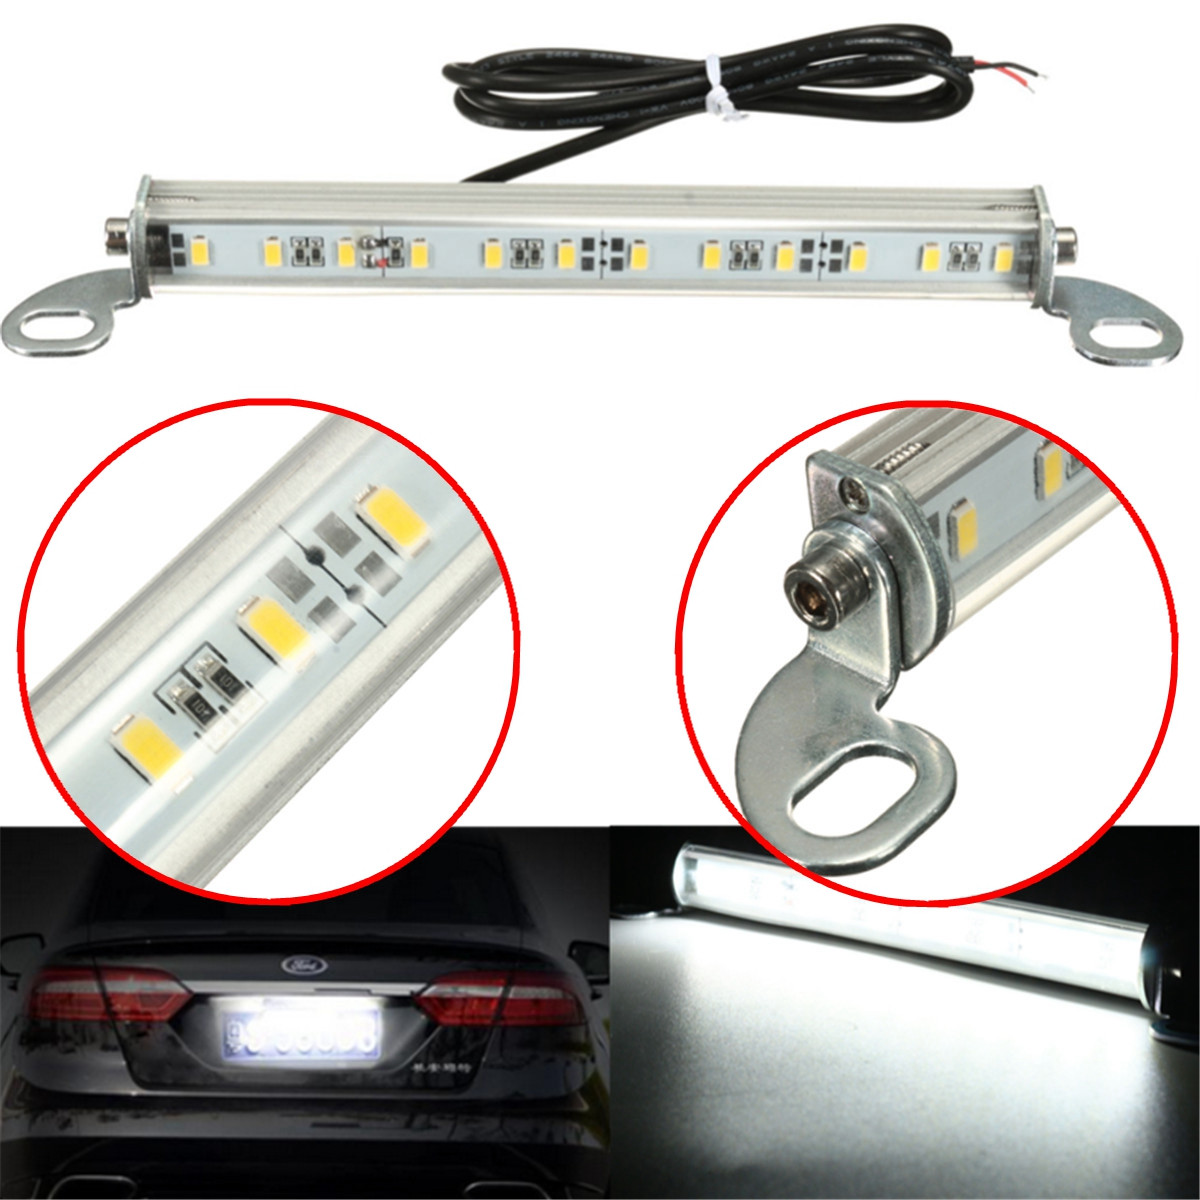 Car Truck Xenon White 12 SMD LED License Plate Light 12V DC Screw Bolt-On